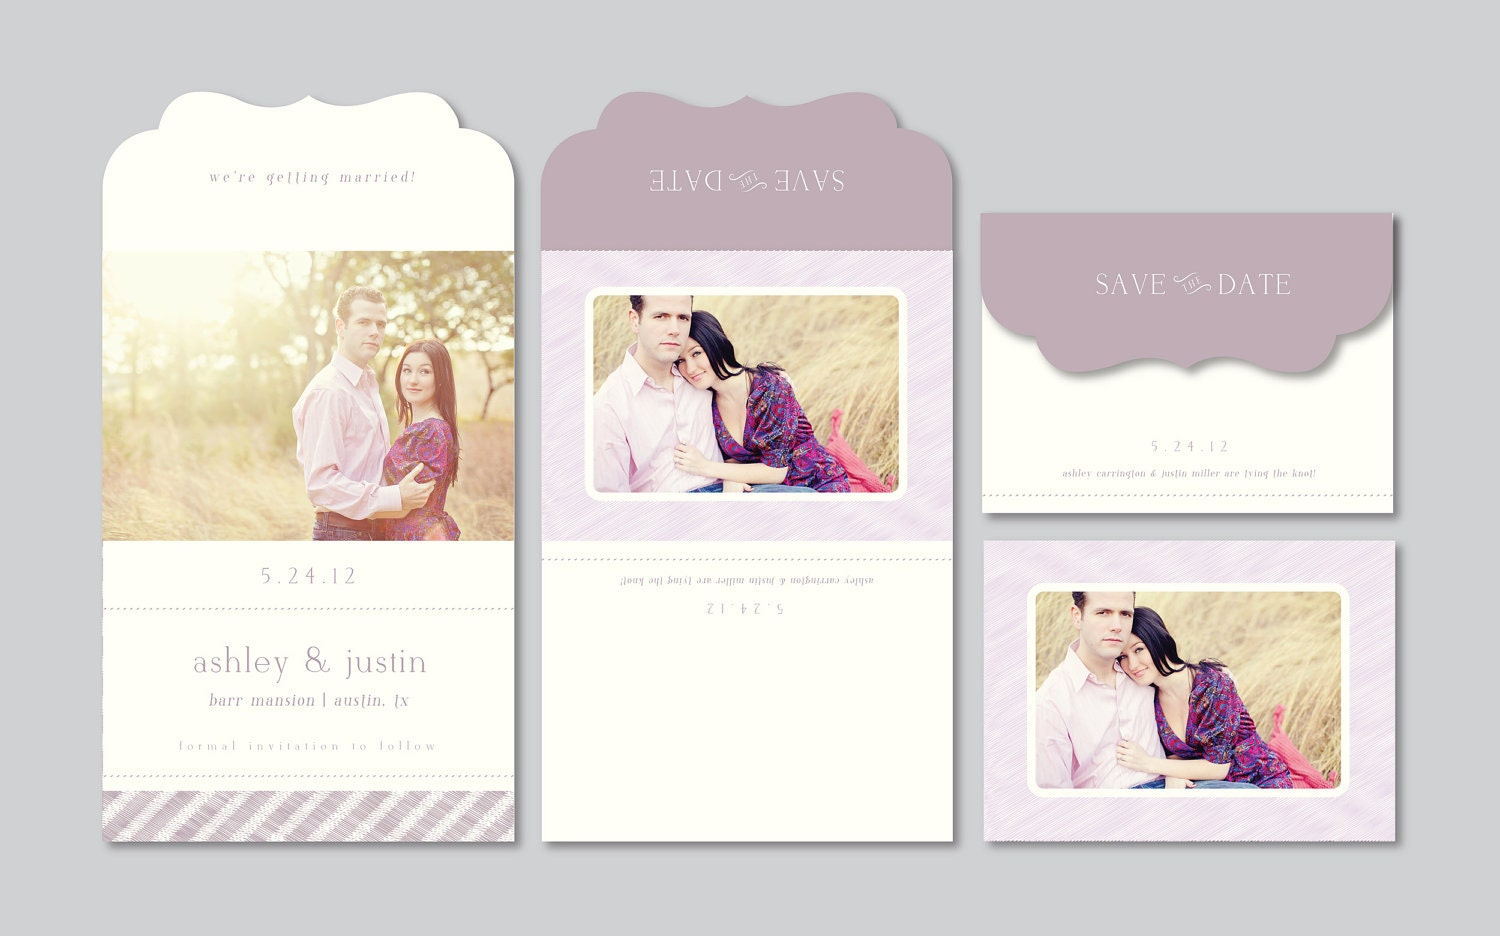 electronic save the date template - modern save the date photography template by